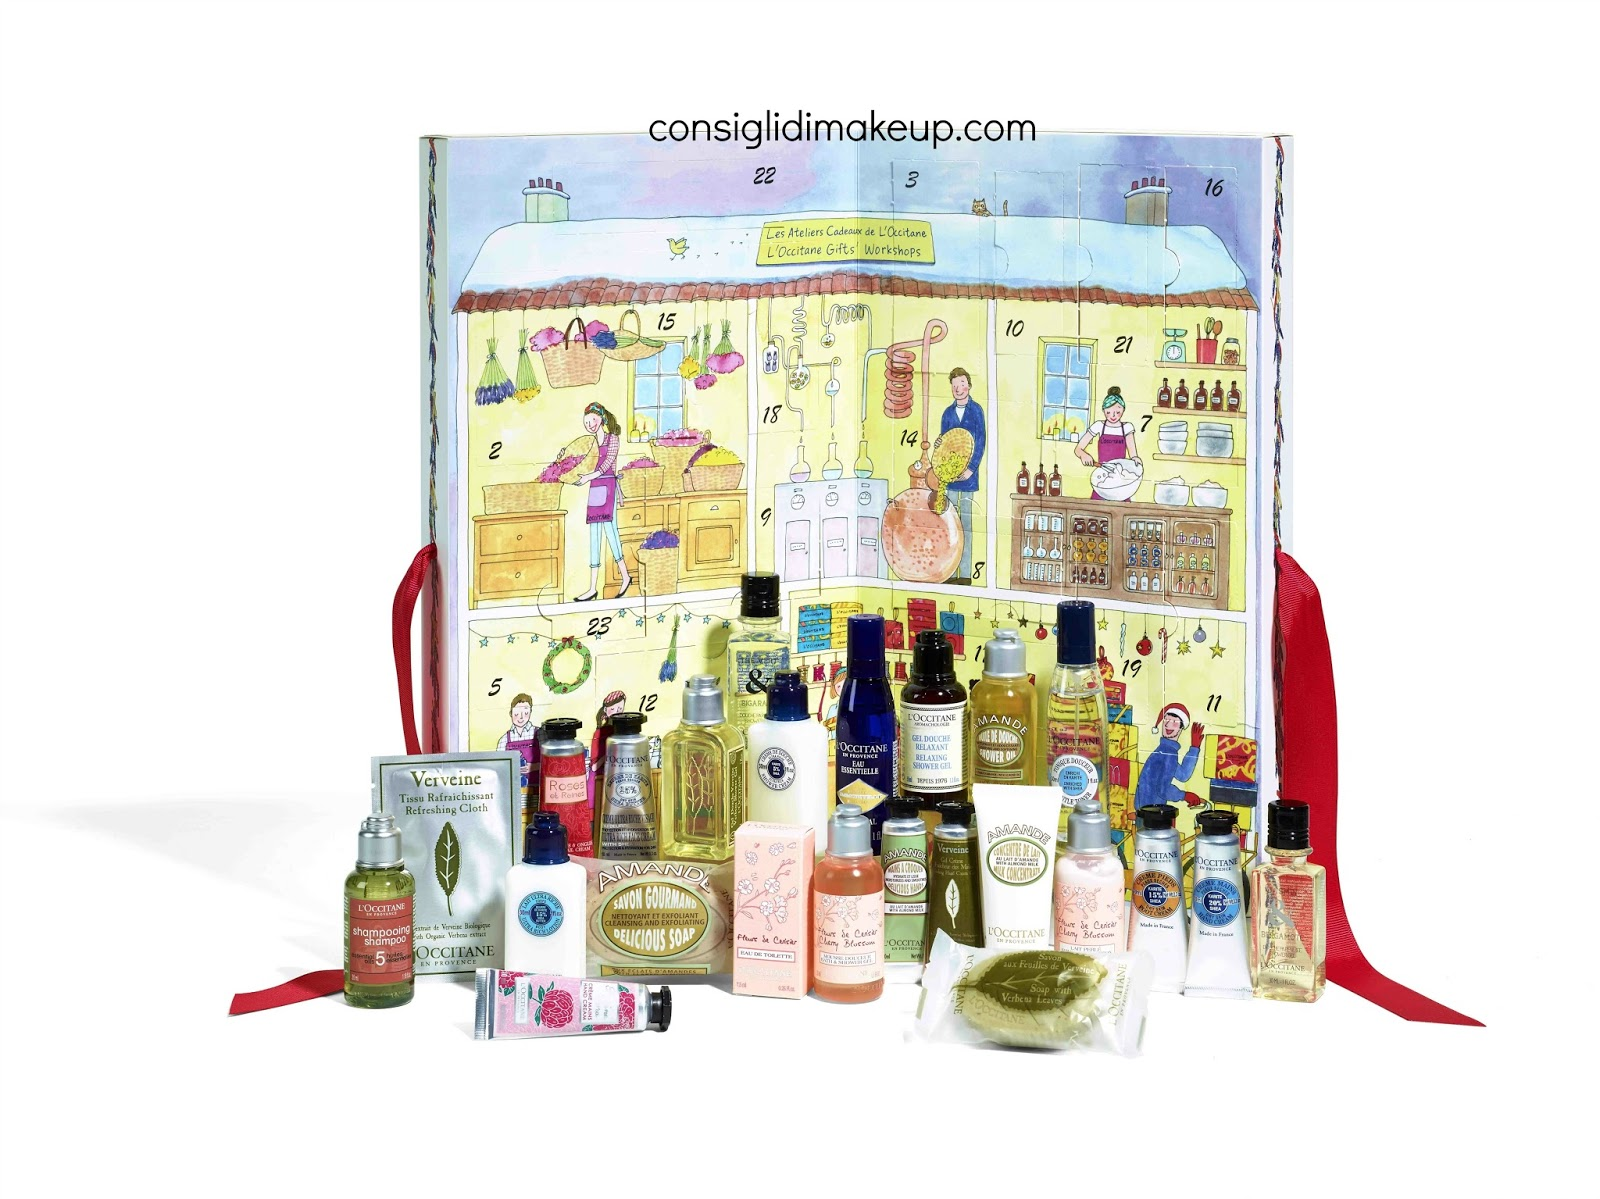 Calendario Avvento Makeup.Preview Calendario Dell Avvento 2016 L Occitane